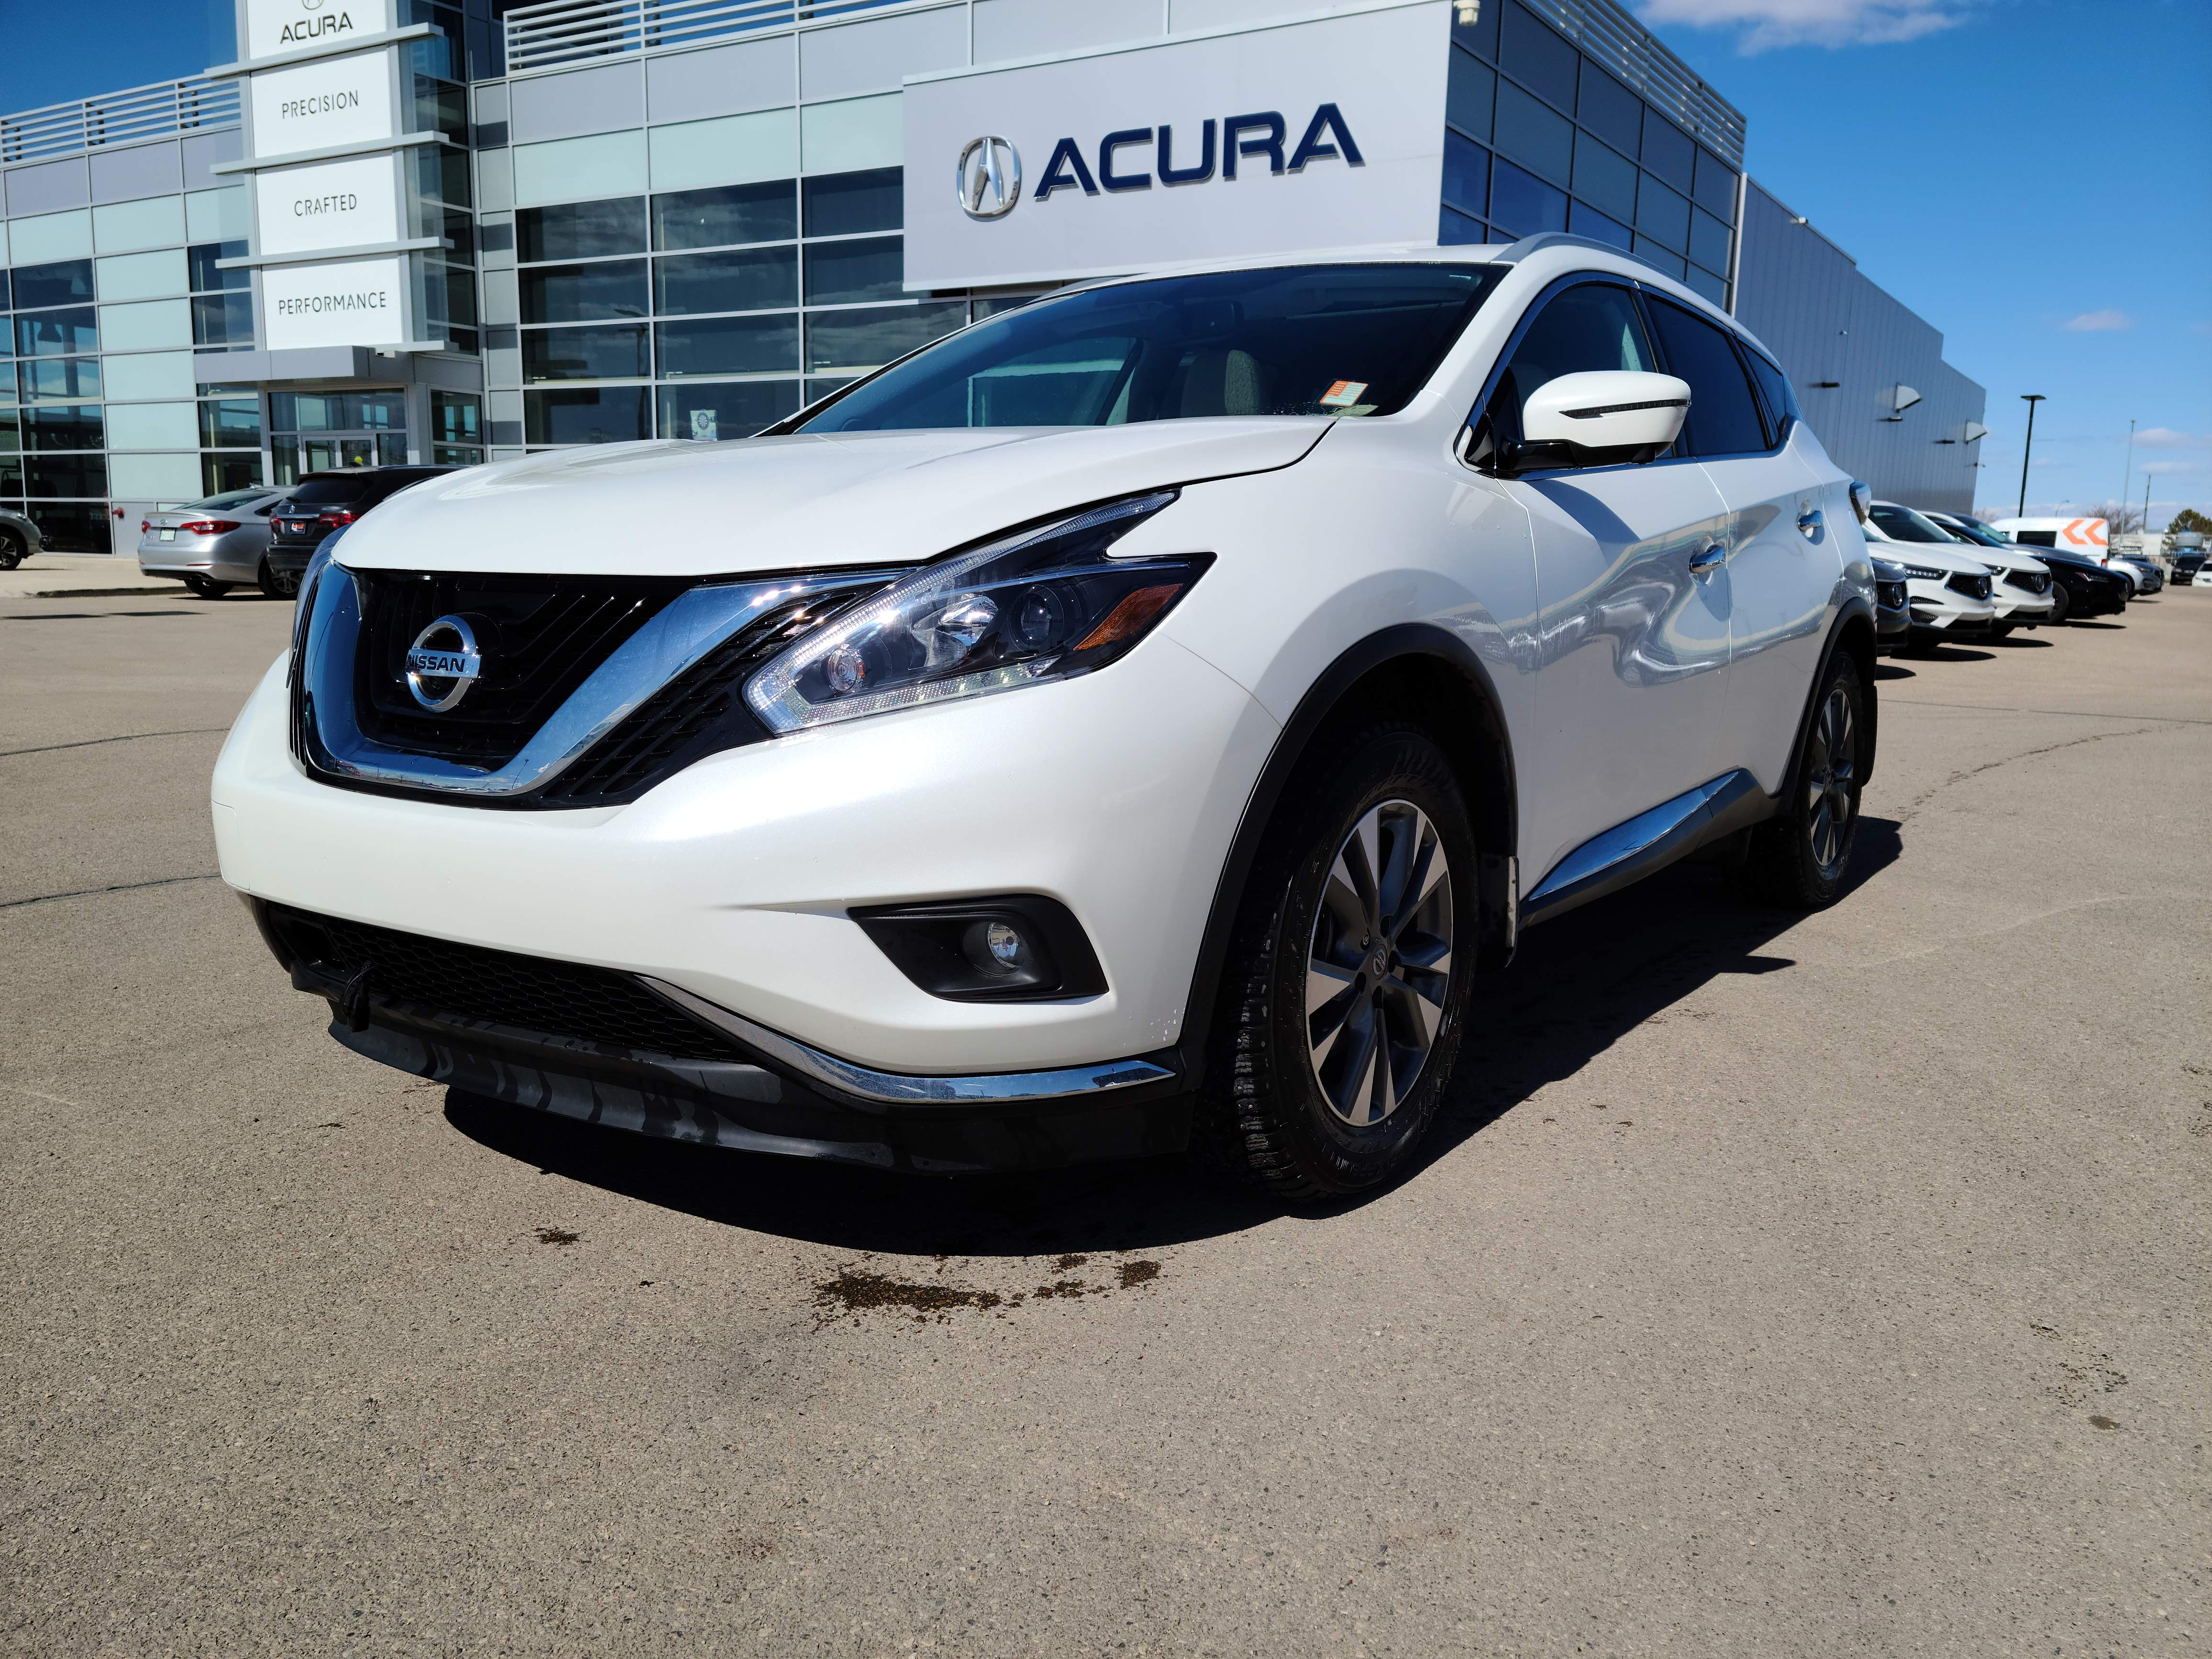 used 2018 Nissan Murano car, priced at $29,992